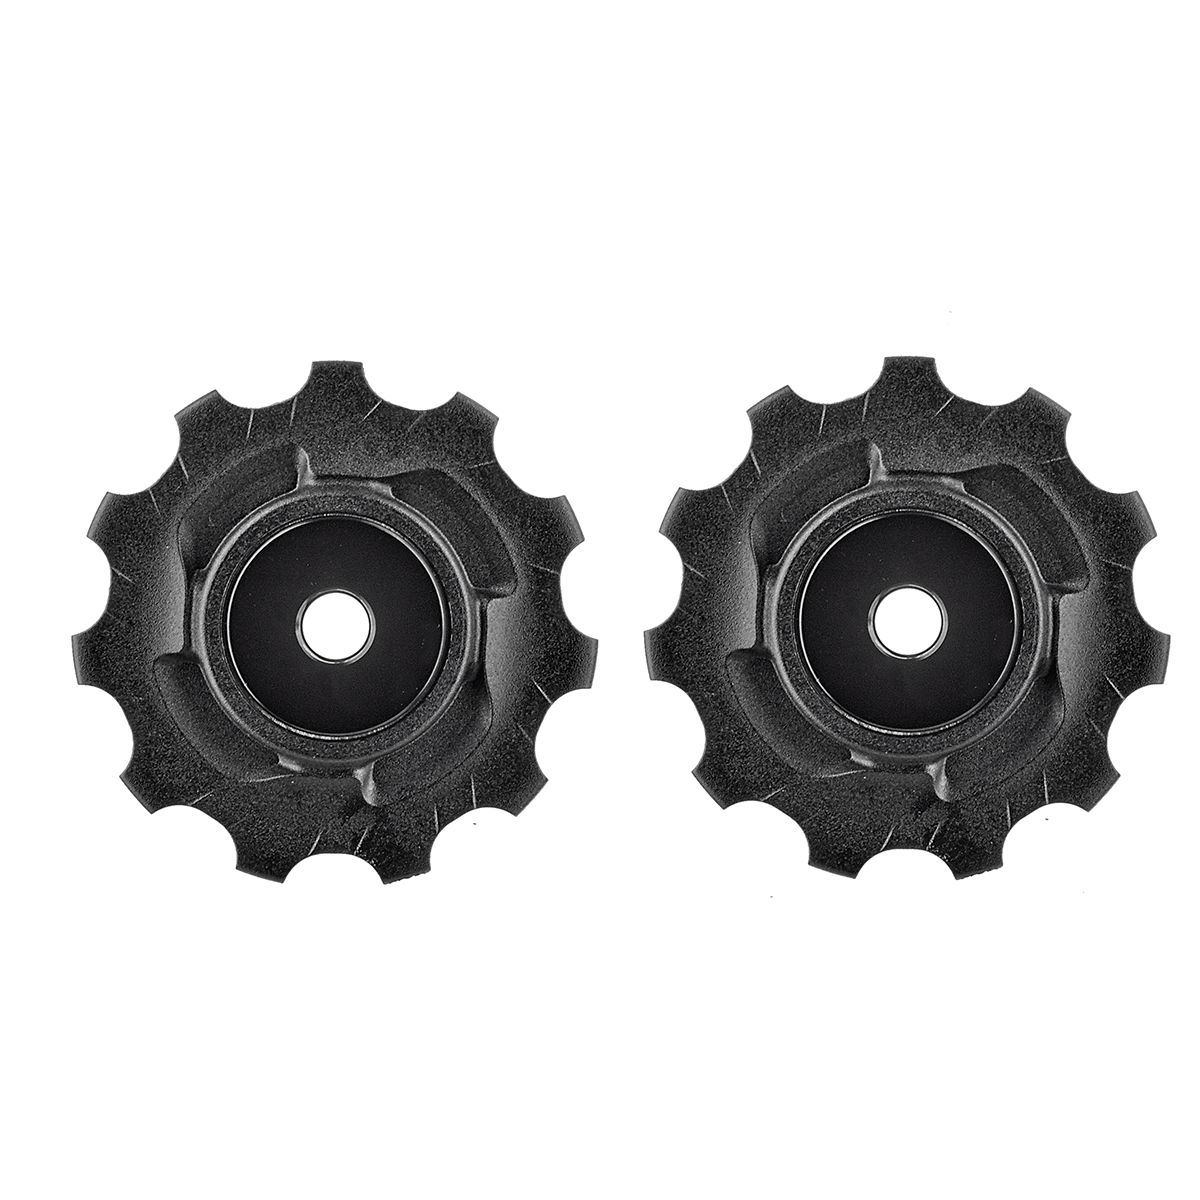 X7 / X9 / GX pulley wheels 2x10 speed